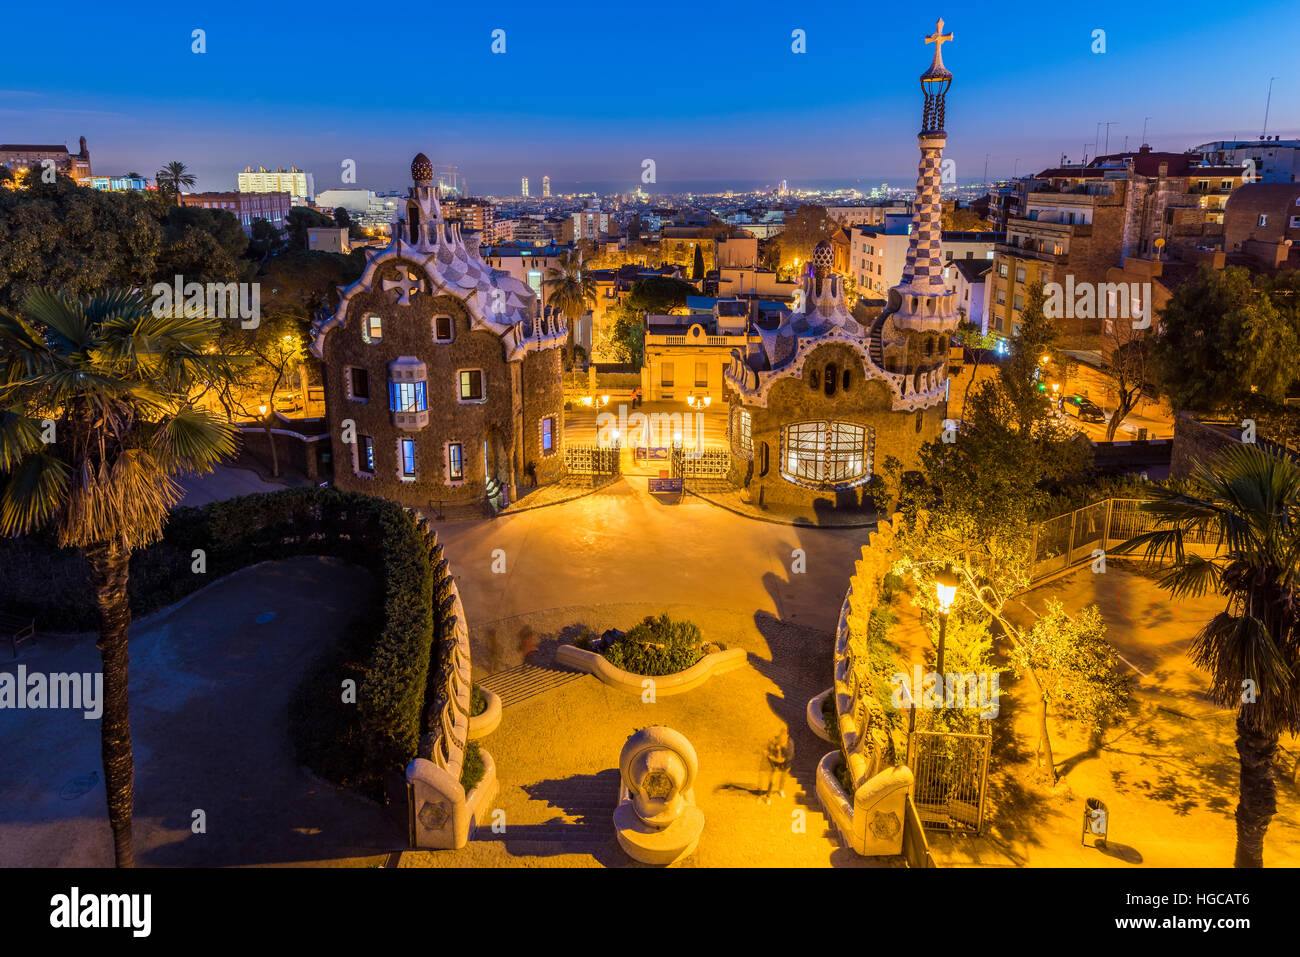 Night view of Park Guell with city skyline behind, Barcelona, Catalonia, Spain - Stock Image